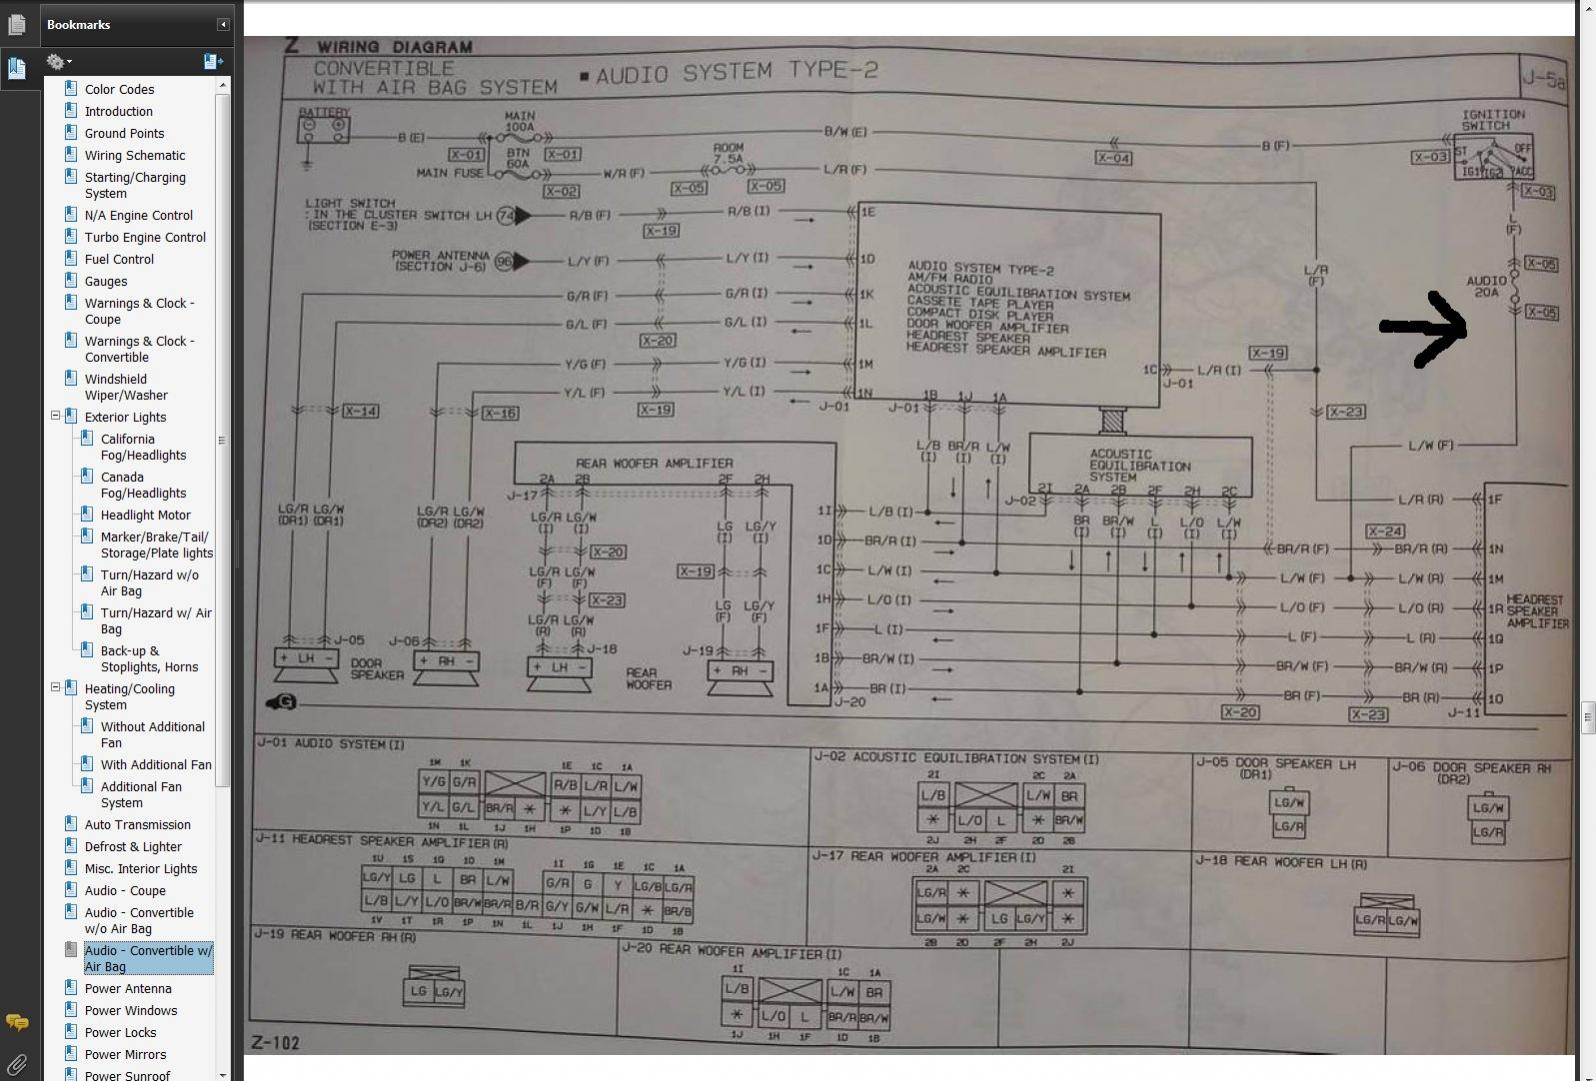 Wiring Diagram Together With Clarion Wiring Diagram On Clarion Wiring